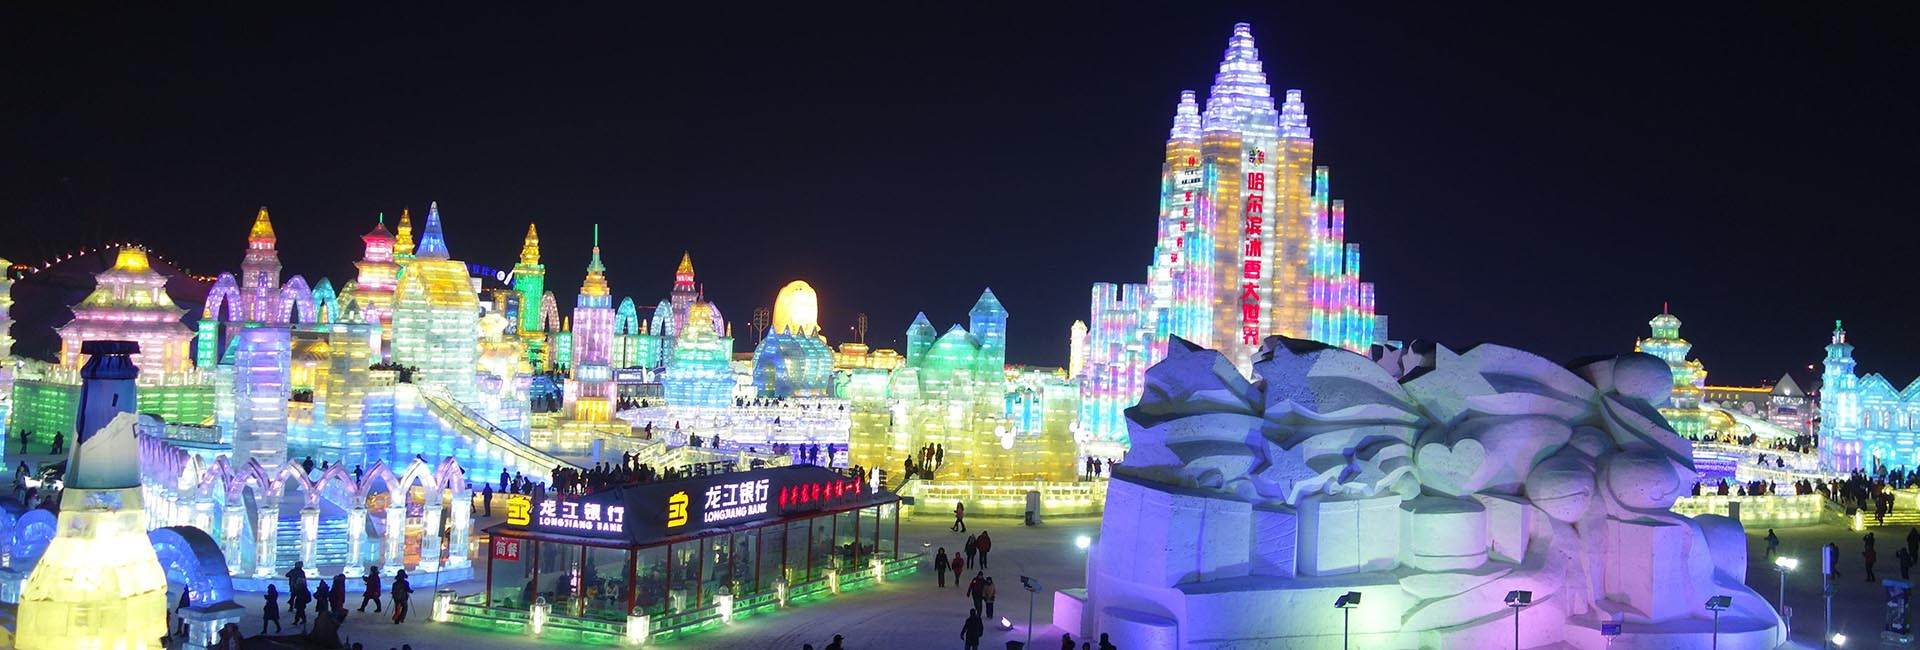 Places To Visit In Harbin, Places To Go In Harbin